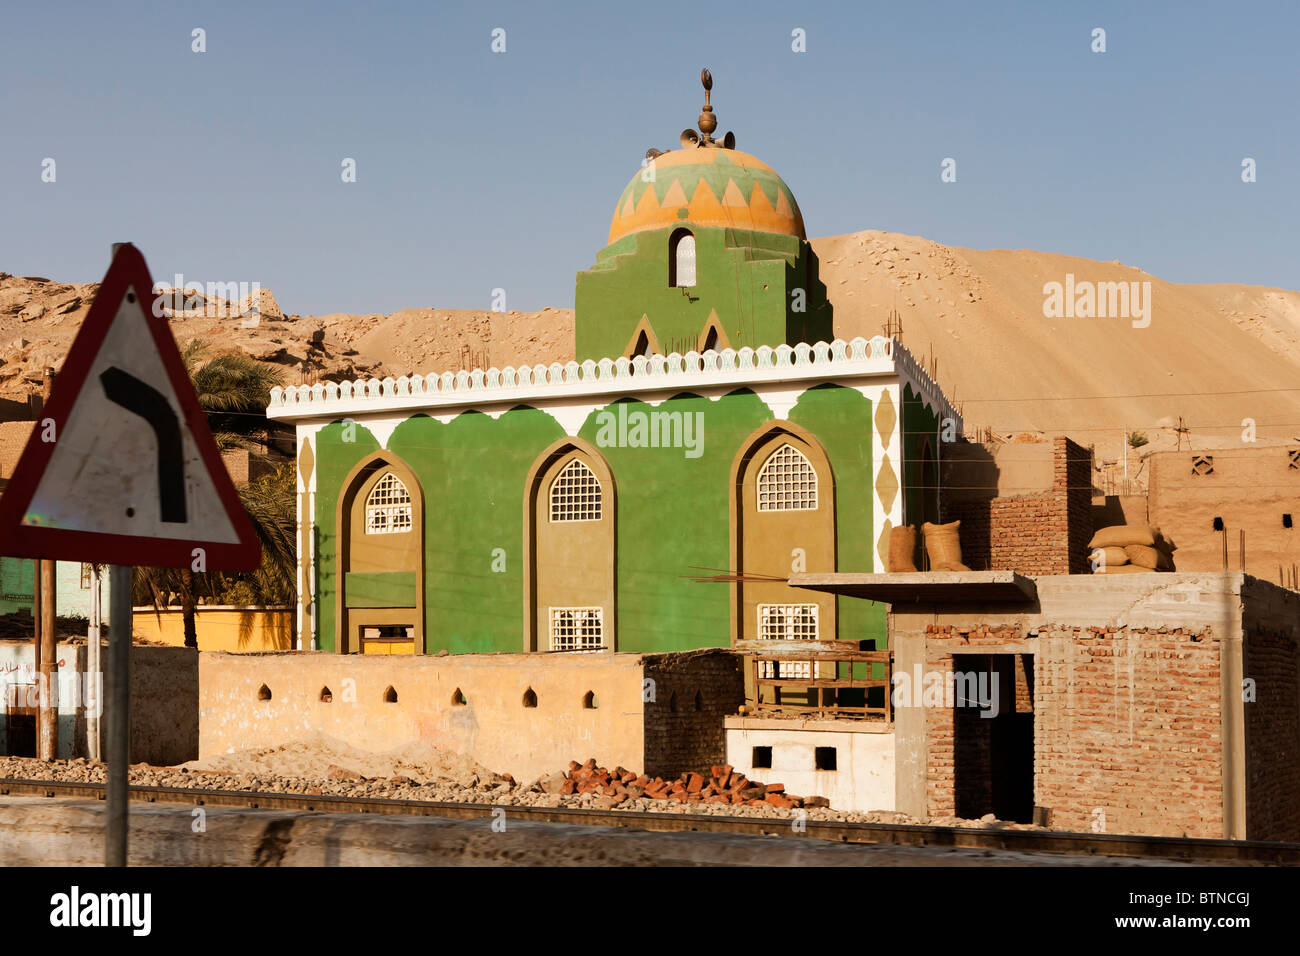 Proud To Me Muslim Stock Photos Images Luxor Besar Green Painted Mosque Close Bend In The Road Near Egypt Image